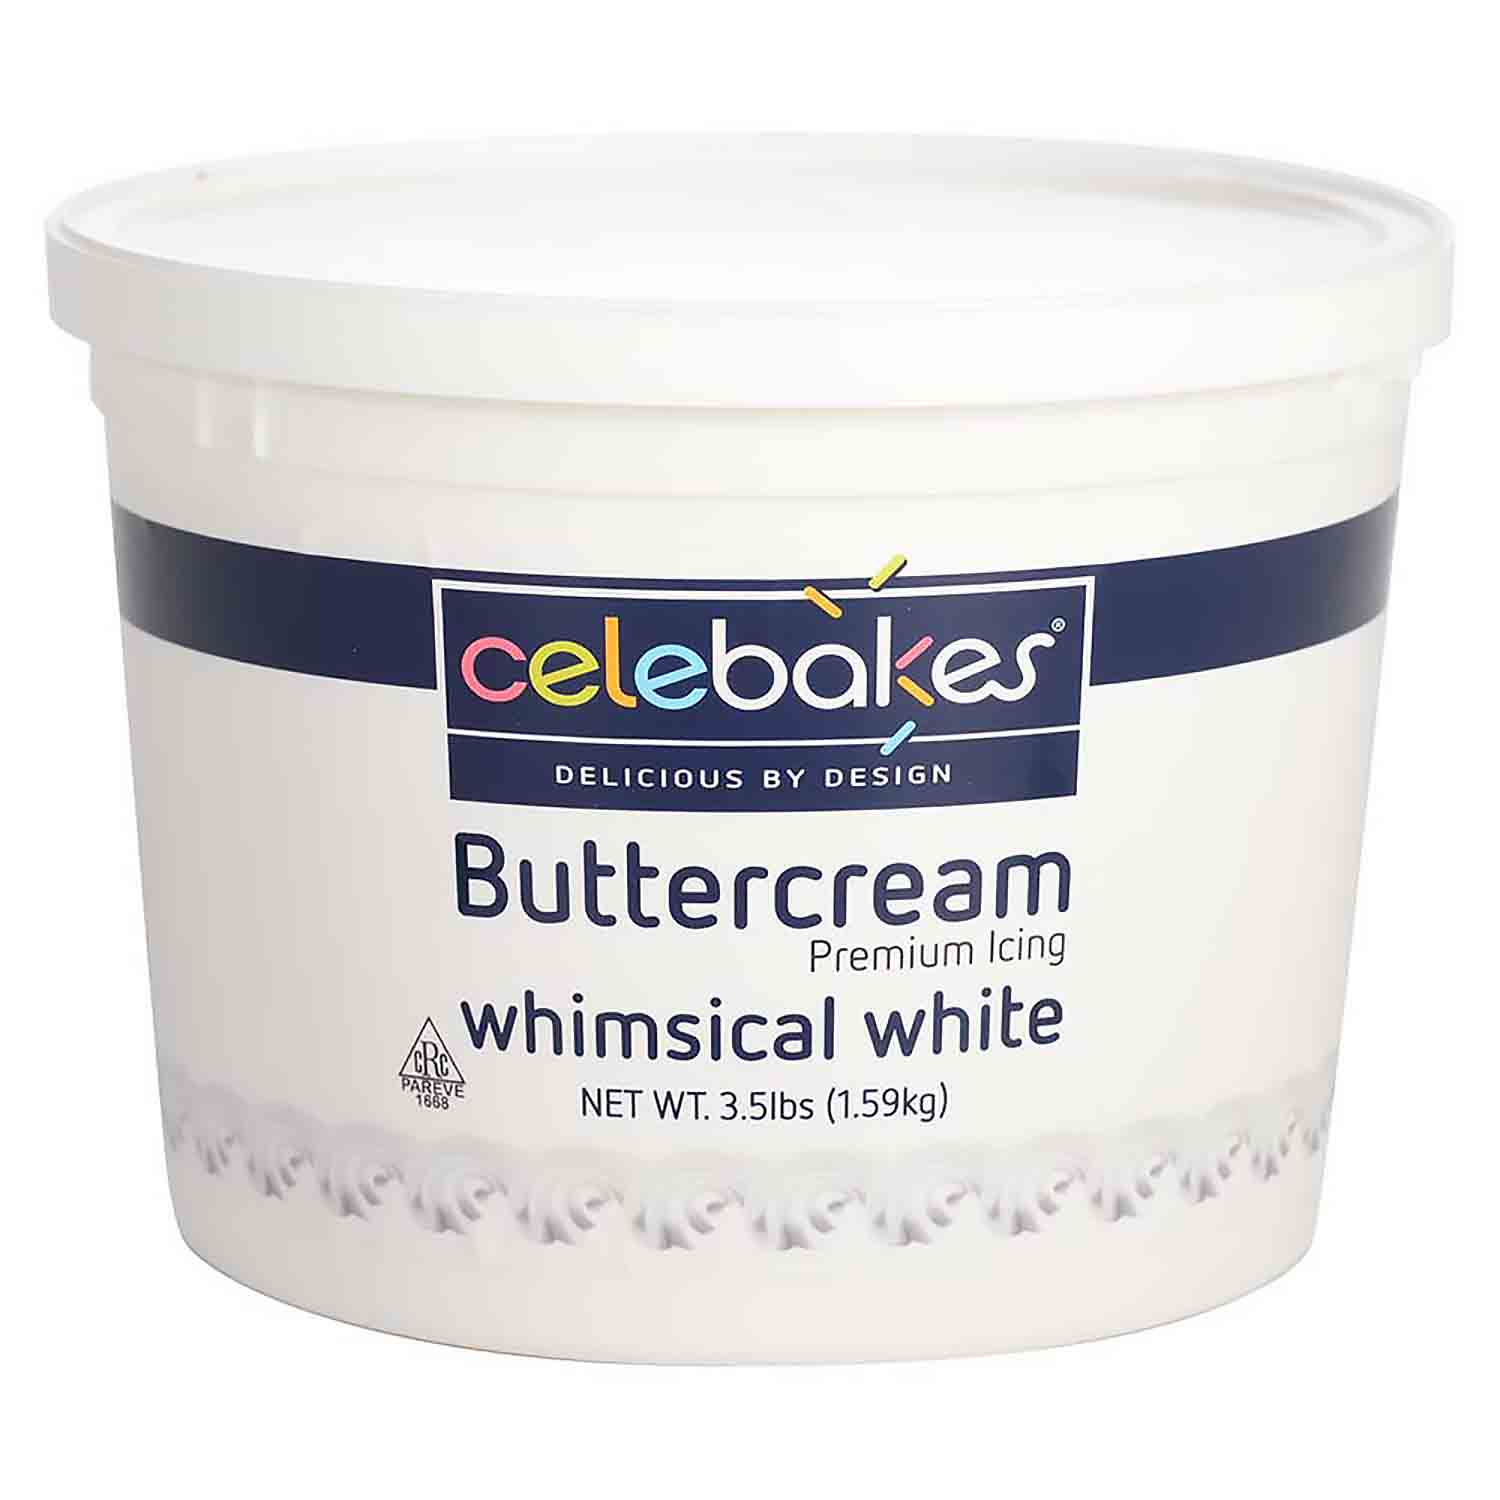 White Buttercream Premium Icing